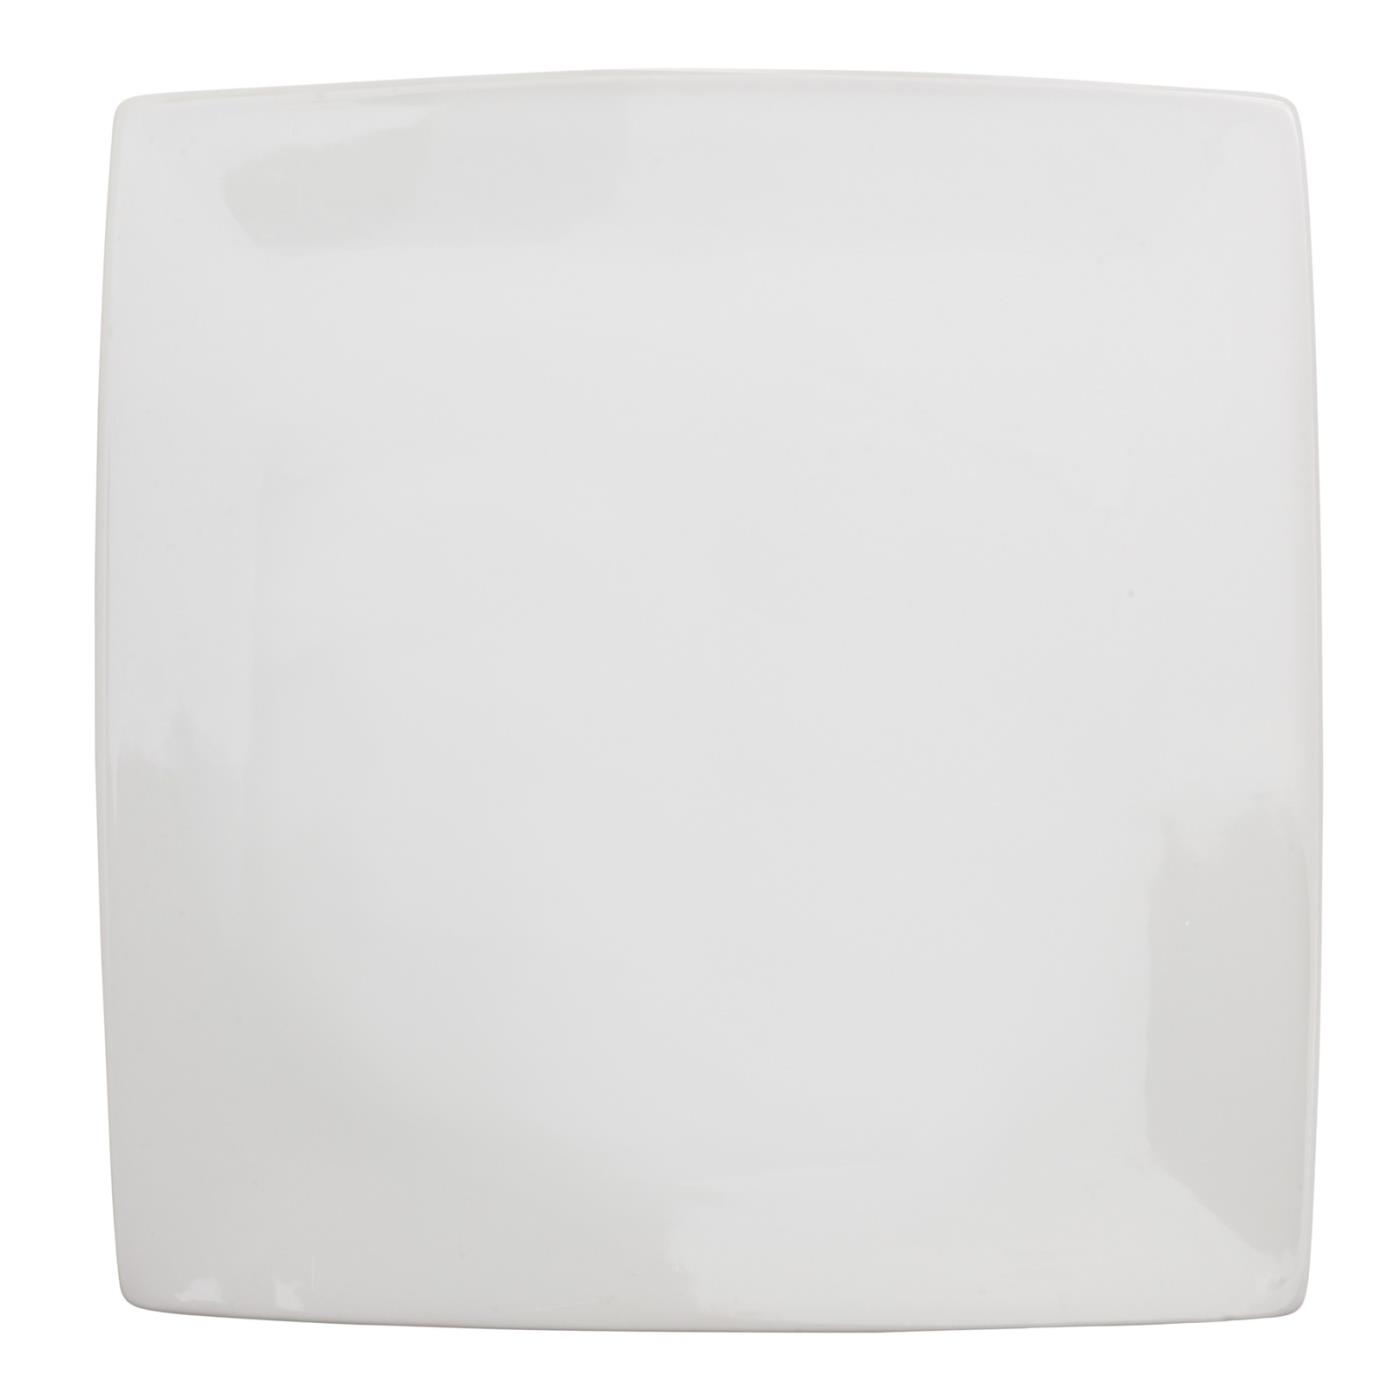 White Canvas Designer Plate 11